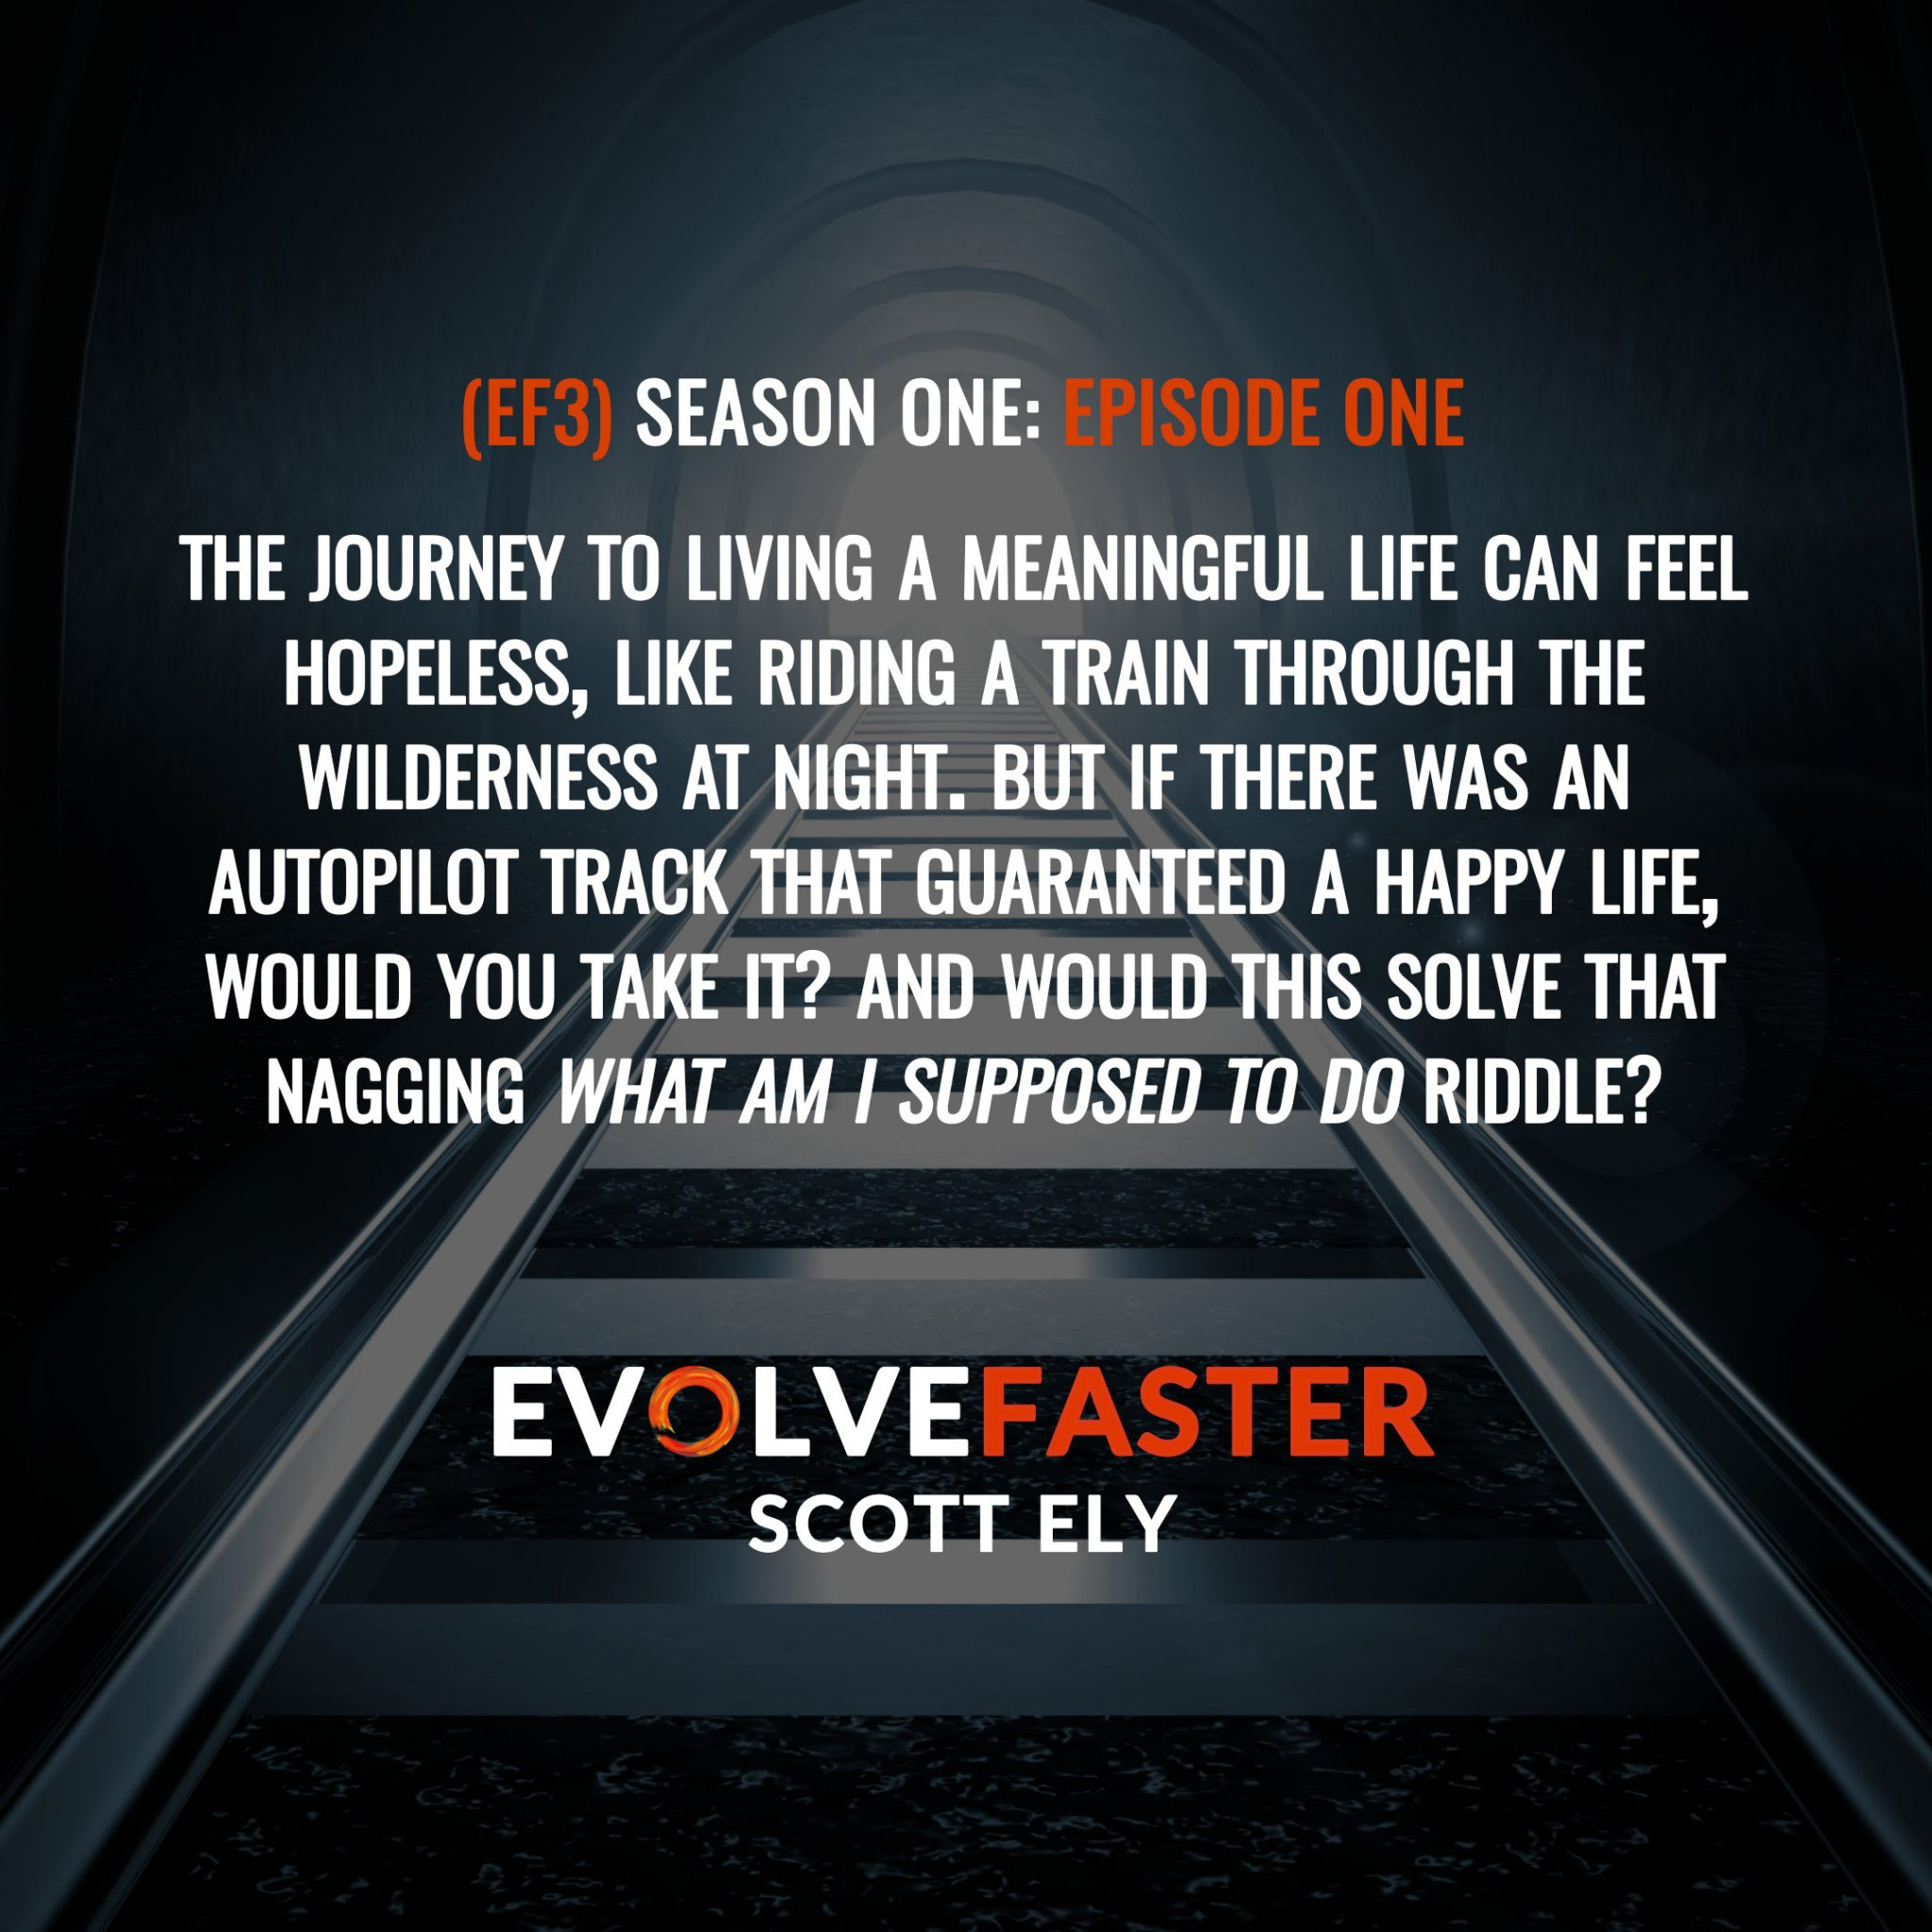 (EF3) S1-E1: All Aboard the Experience Machine Destination Unknown The Evolve Faster Podcast with Scott Ely Season One